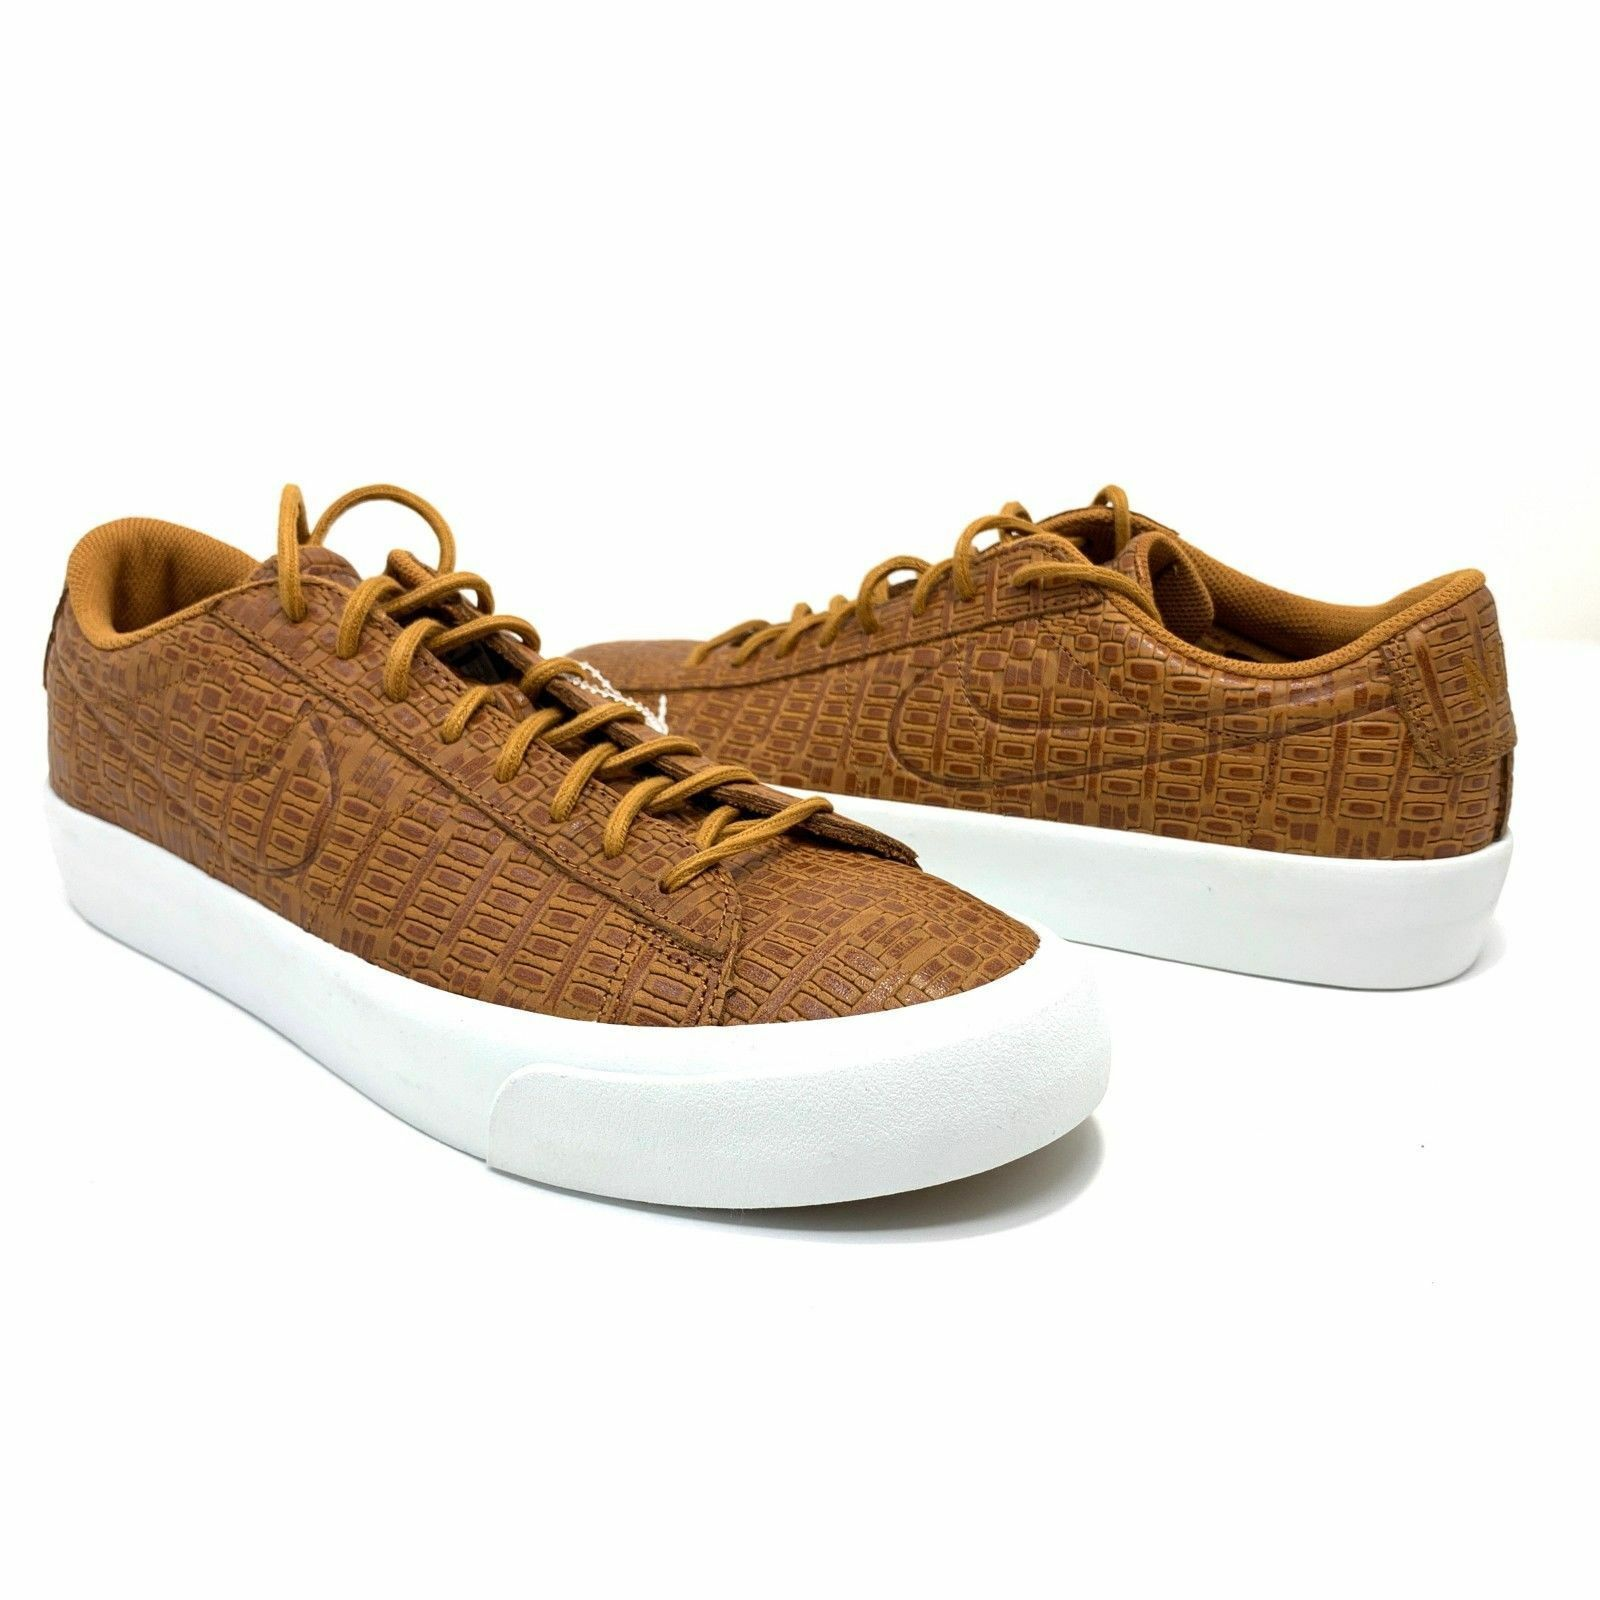 on sale f2ef9 55201 57. 57. Previous. Nike Blazer Studio Bas Alligator Désert Ocre Taille Us 8, Eu  41 ...